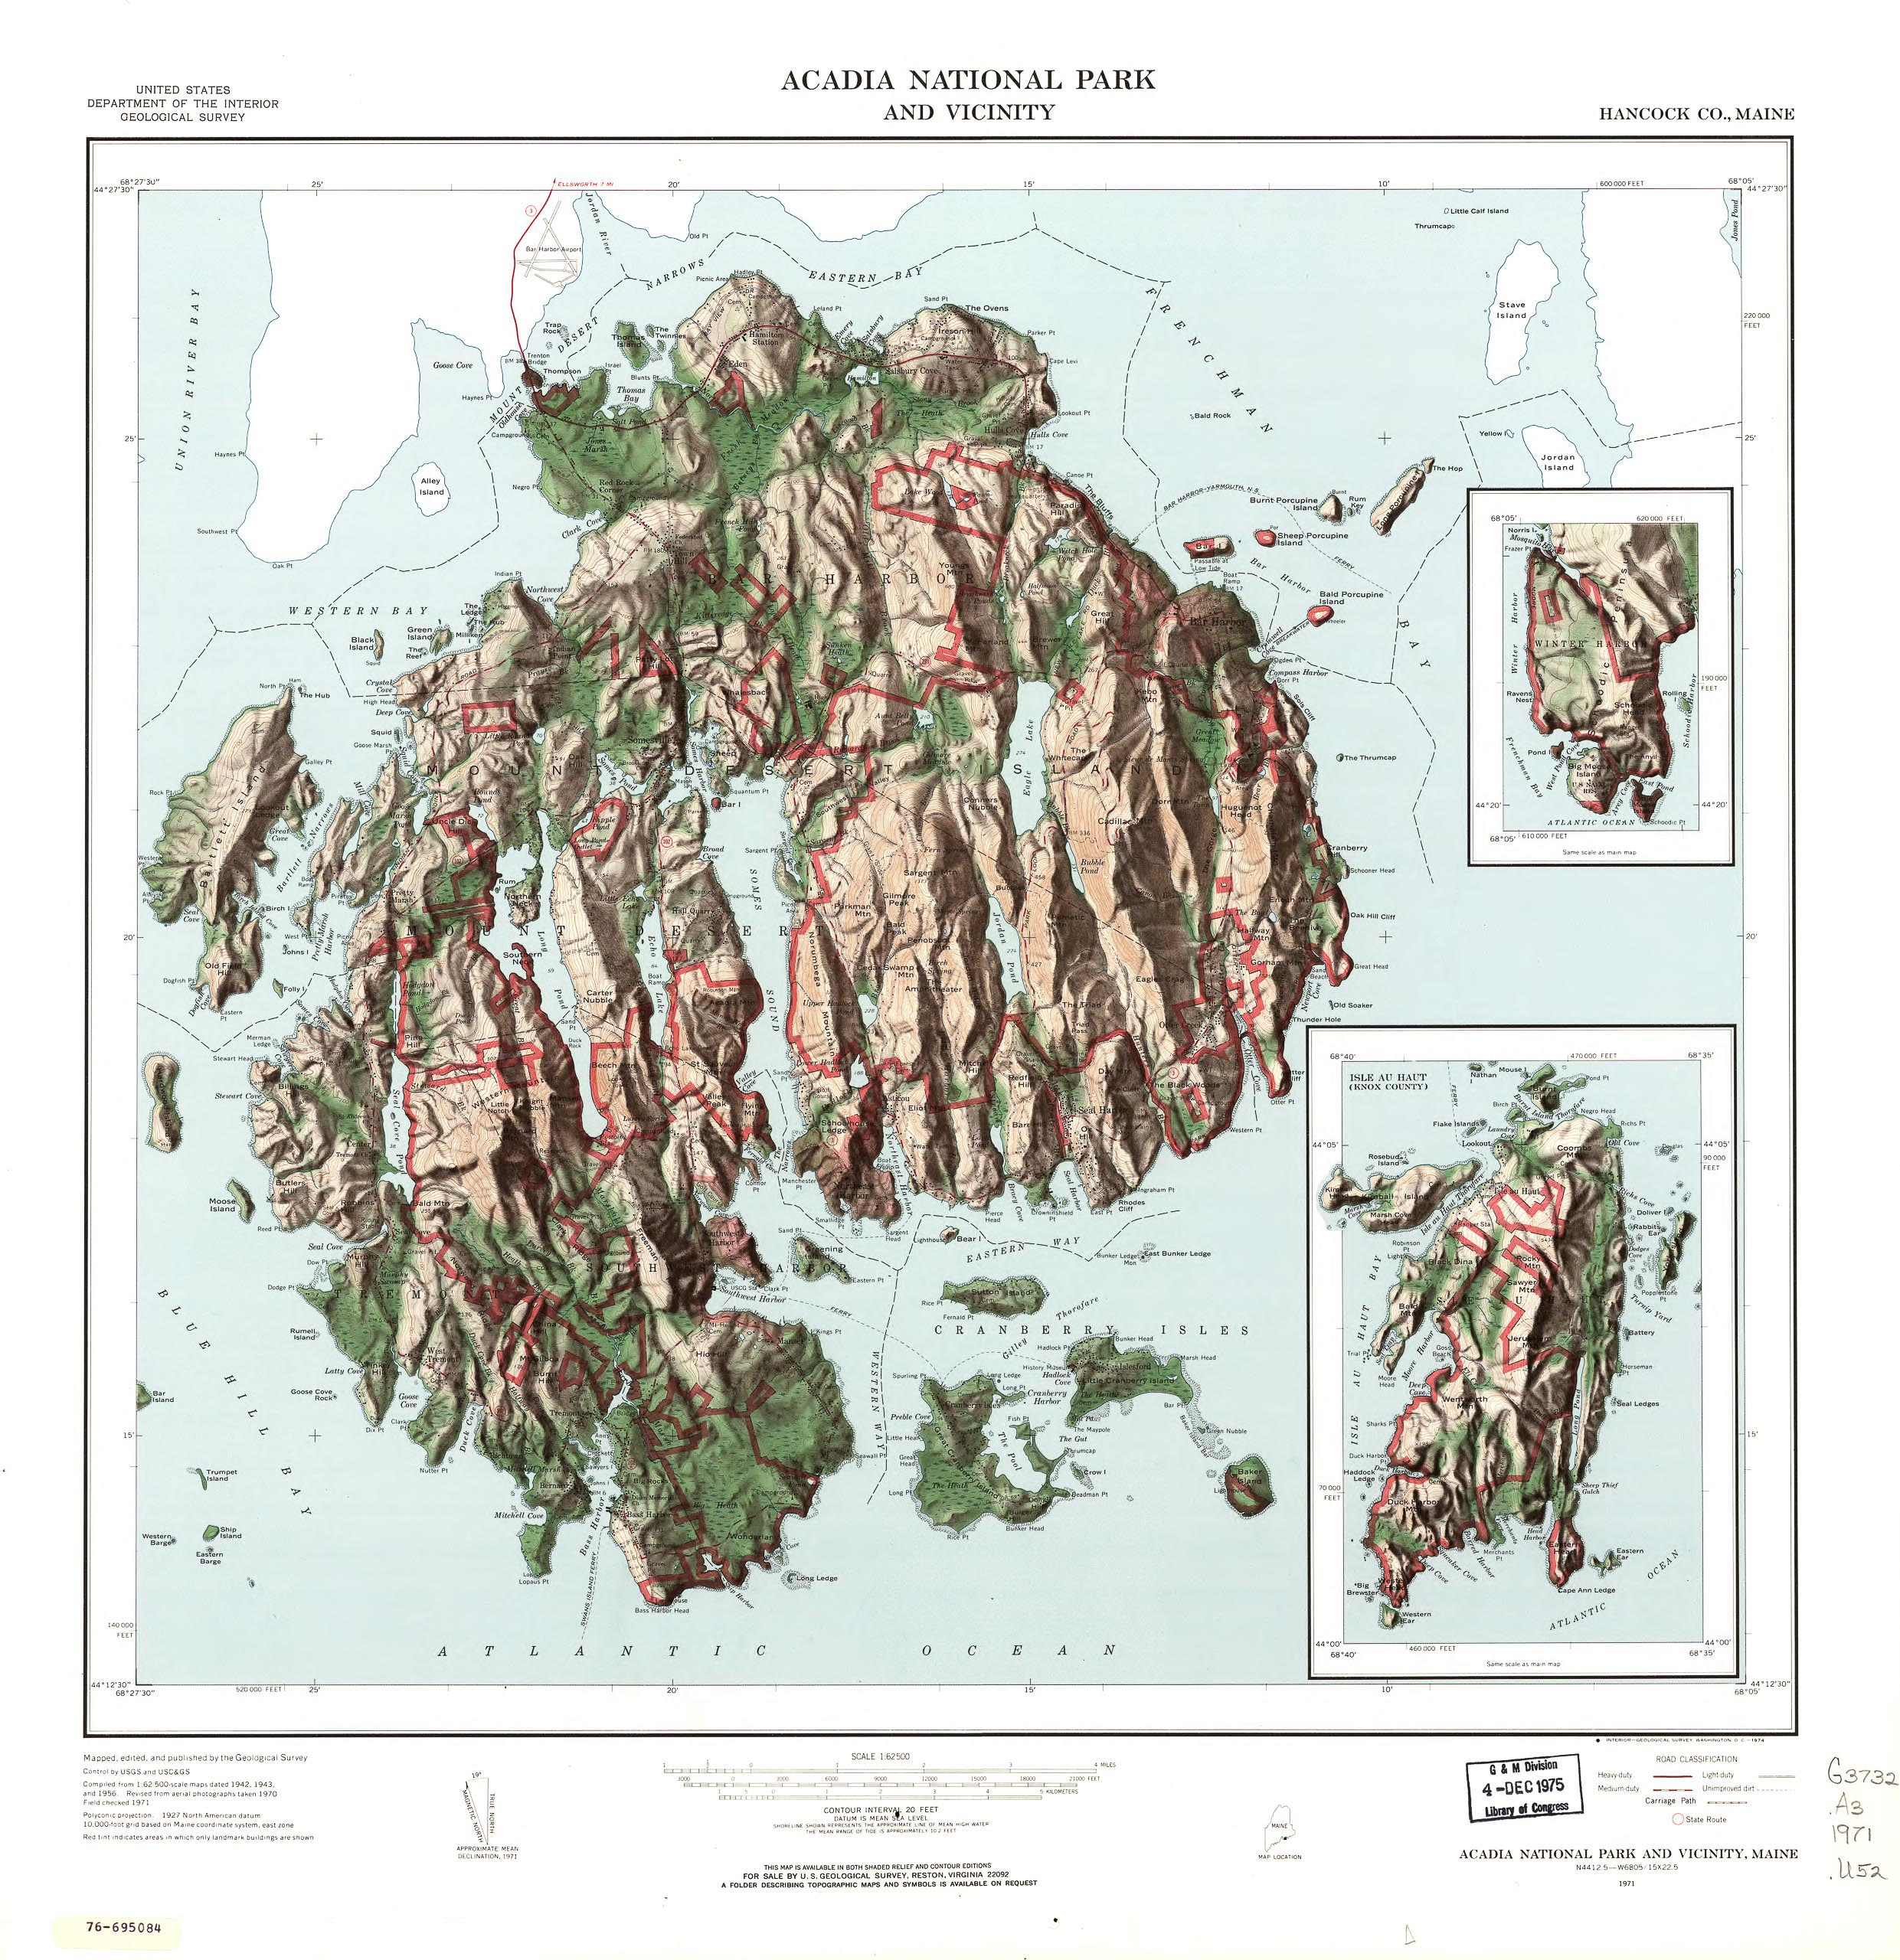 1971 Map of Acadia National Park and Vicinity, Maine